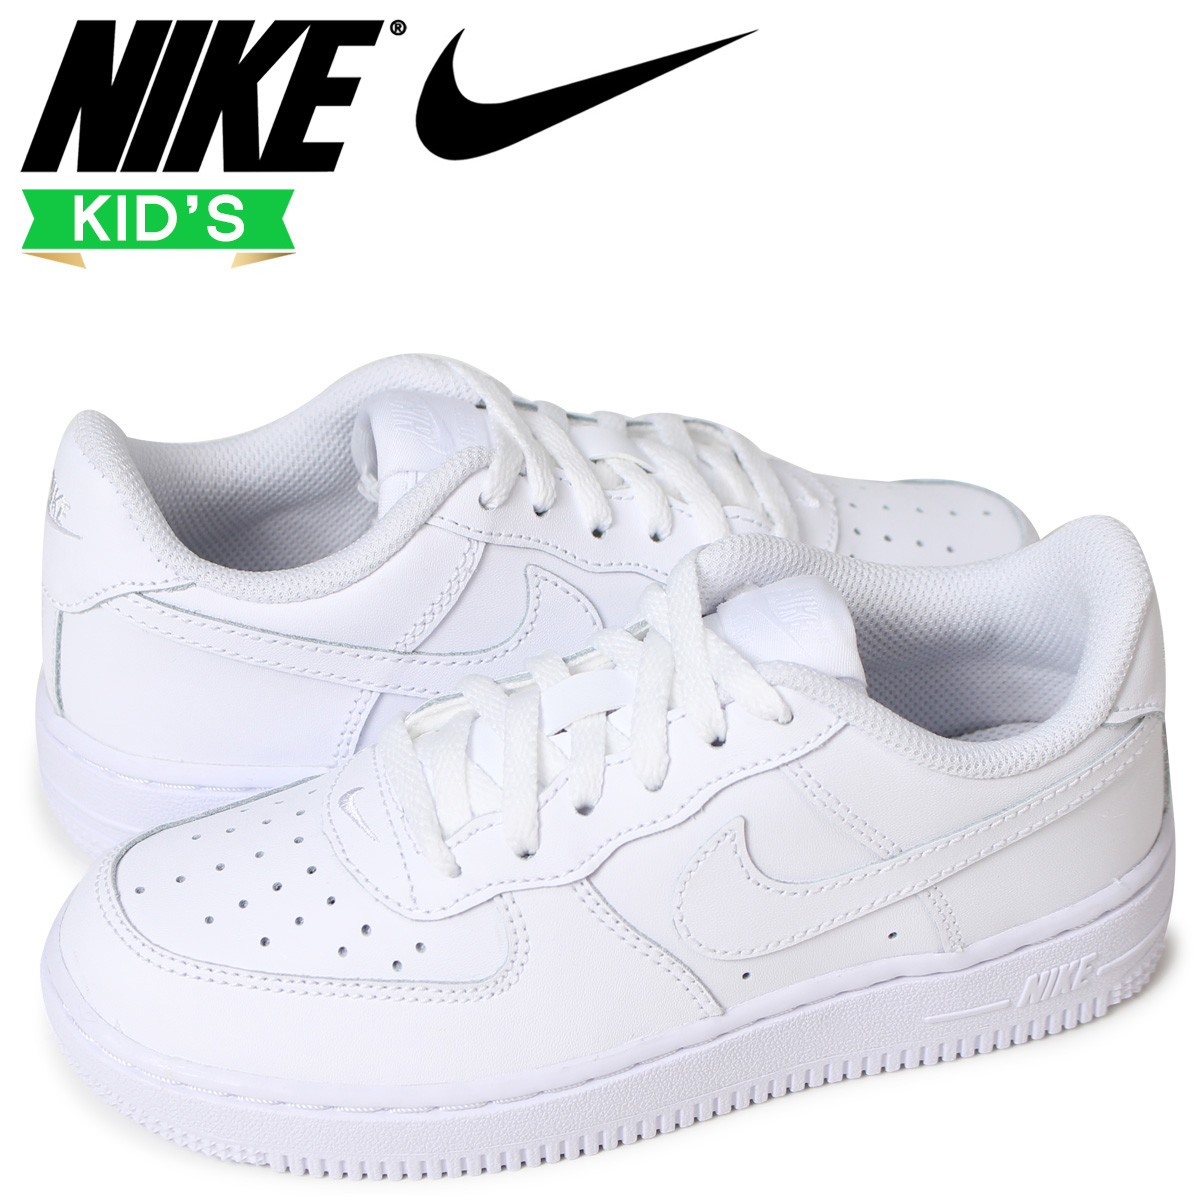 81219ccc26b SneaK Online Shop  NIKE AIR FORCE 1 PS Nike air force 1 kids ...